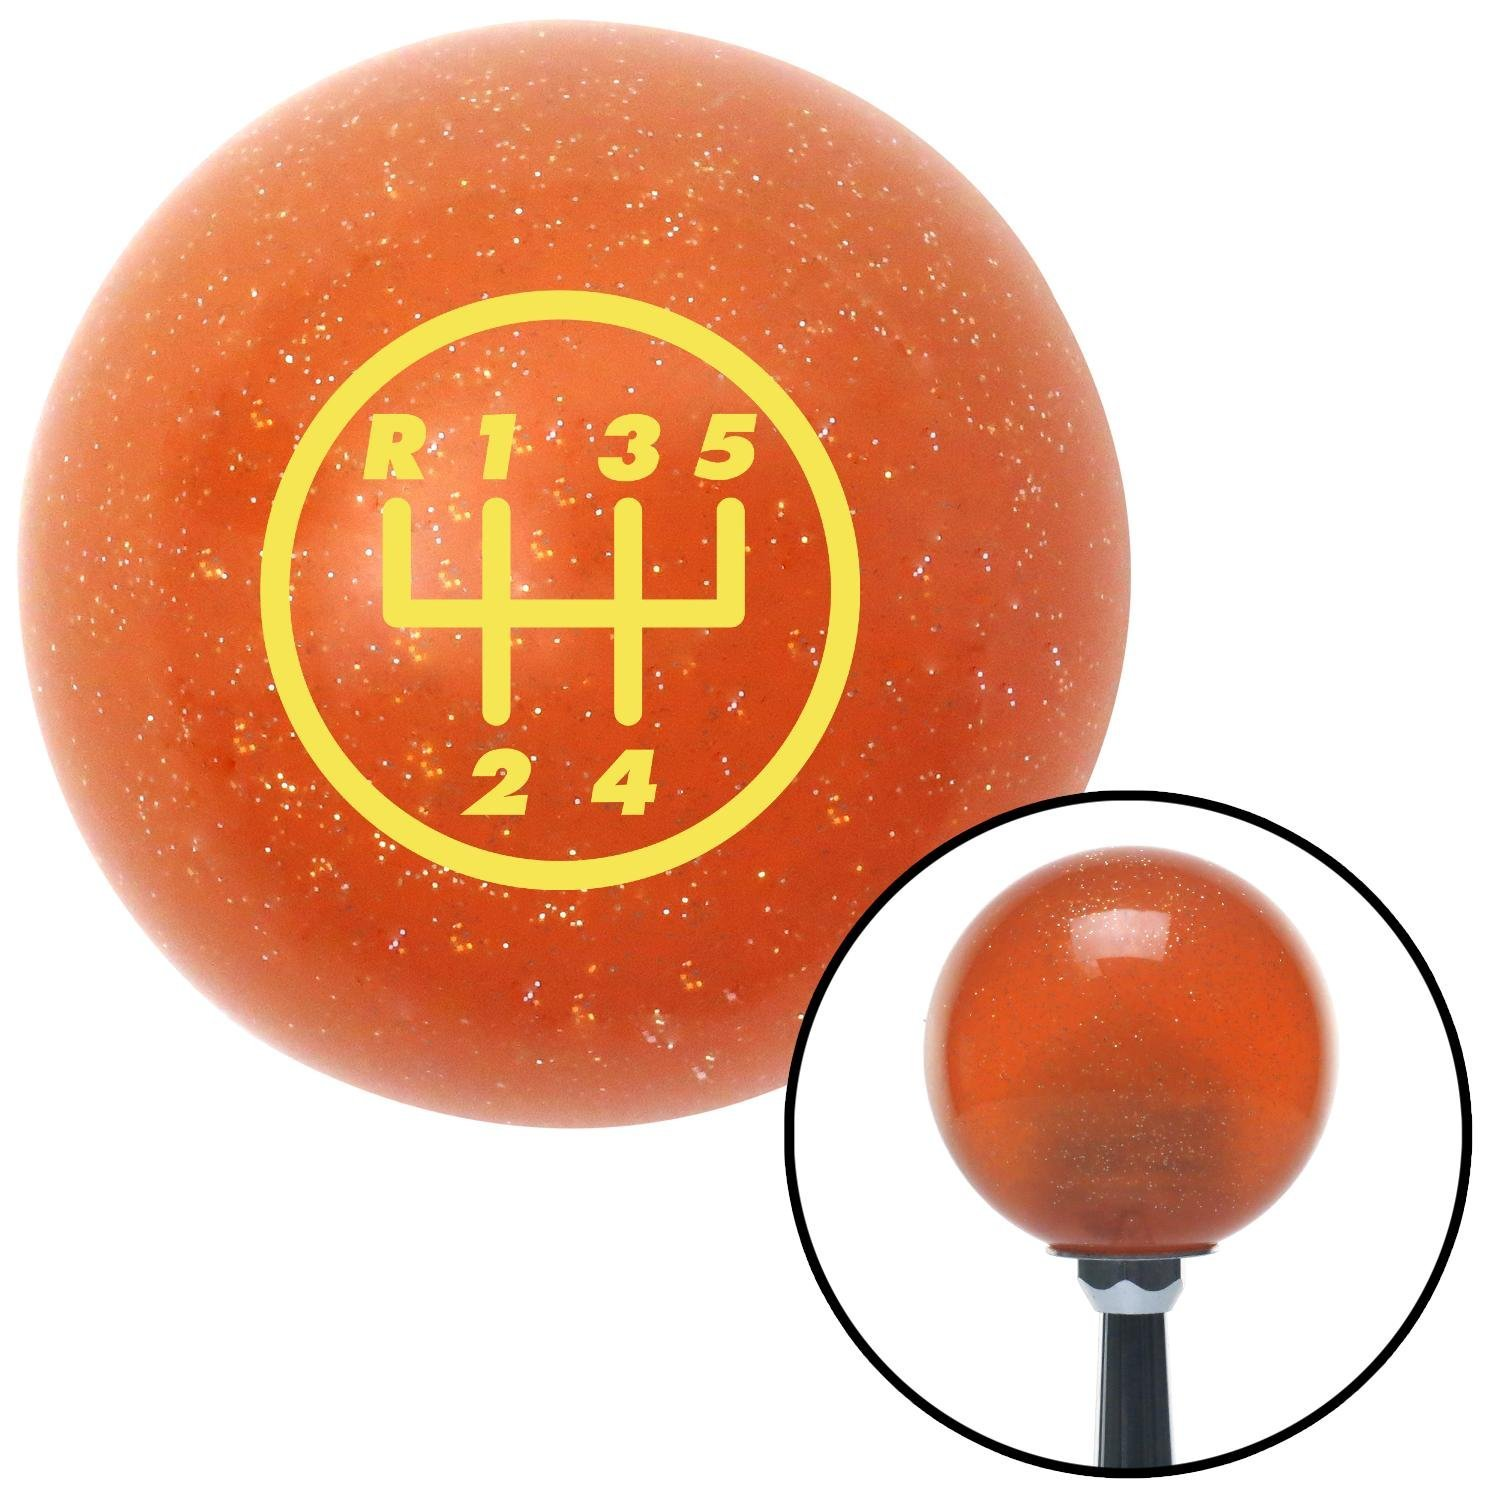 American Shifter 35766 Orange Metal Flake Shift Knob with 16mm x 1.5 Insert Yellow 5 Speed Shift Pattern - 5UR-RUL